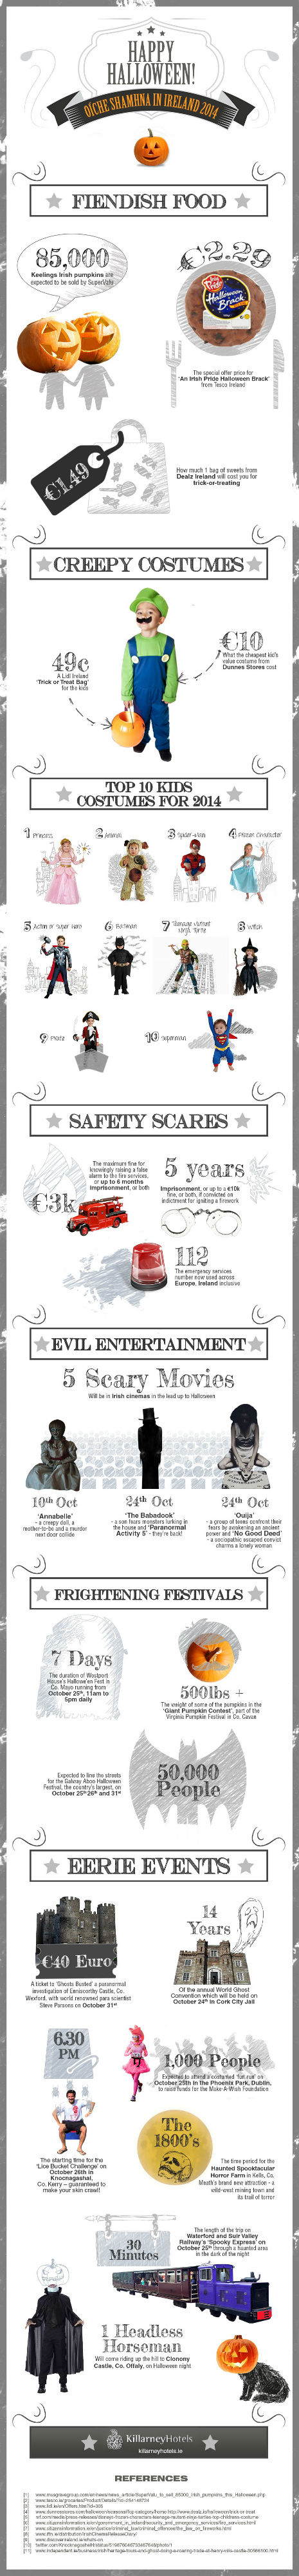 Happy Halloween! Oiche Shamhna in Ireland [Infographic]